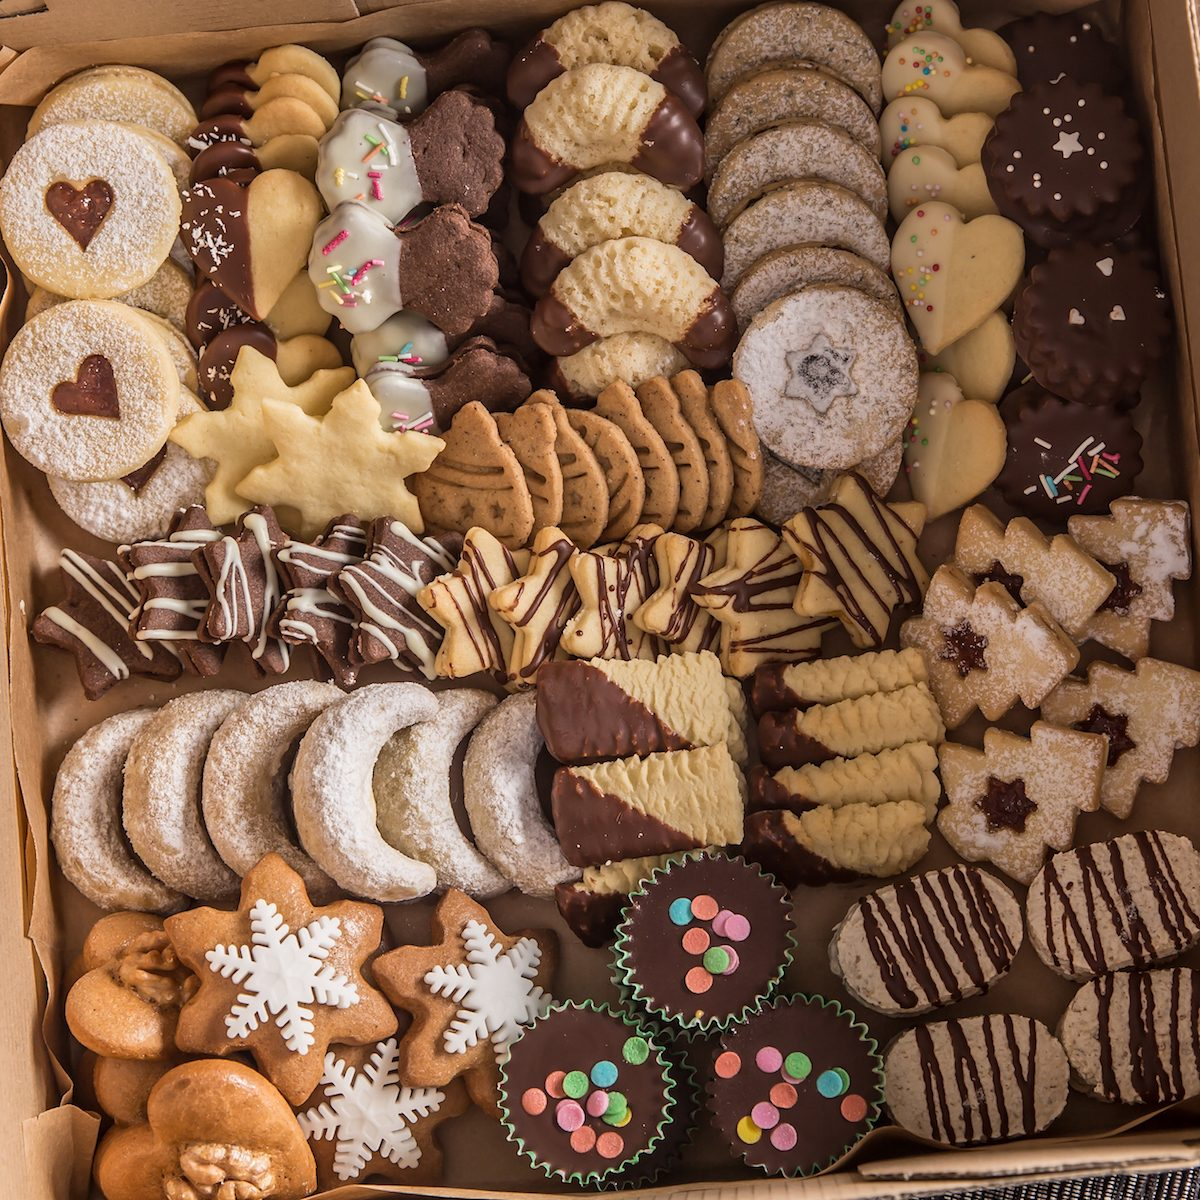 A box full of assorted cookies.